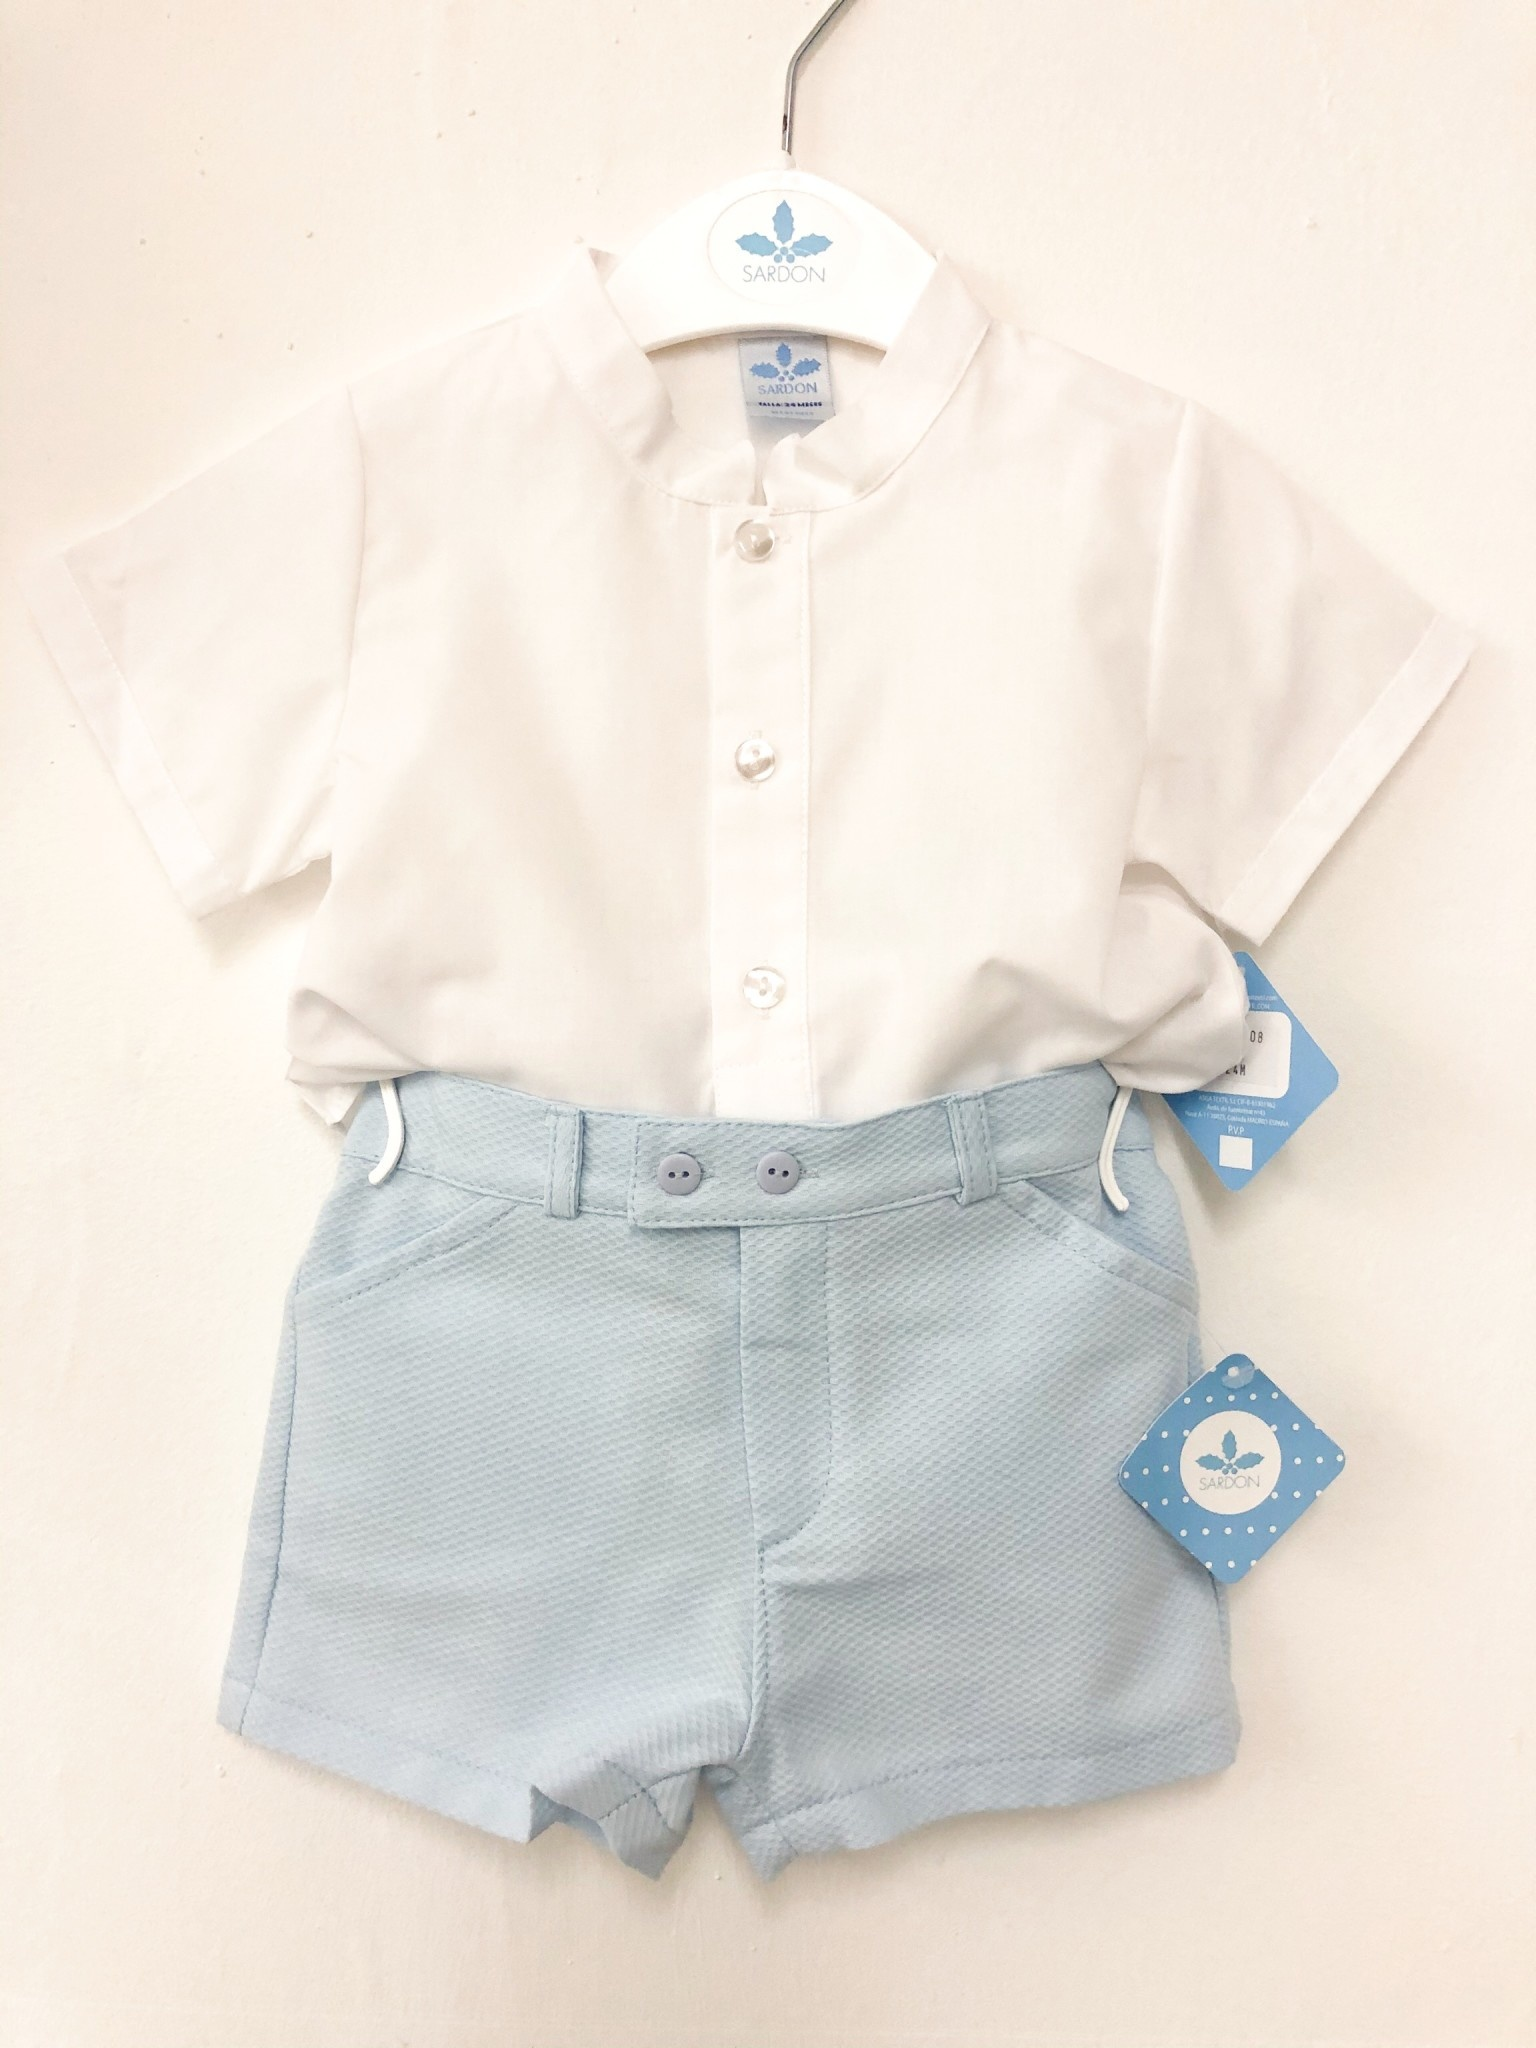 Sardon Sardon 20AB-01 Shirt & Short Set